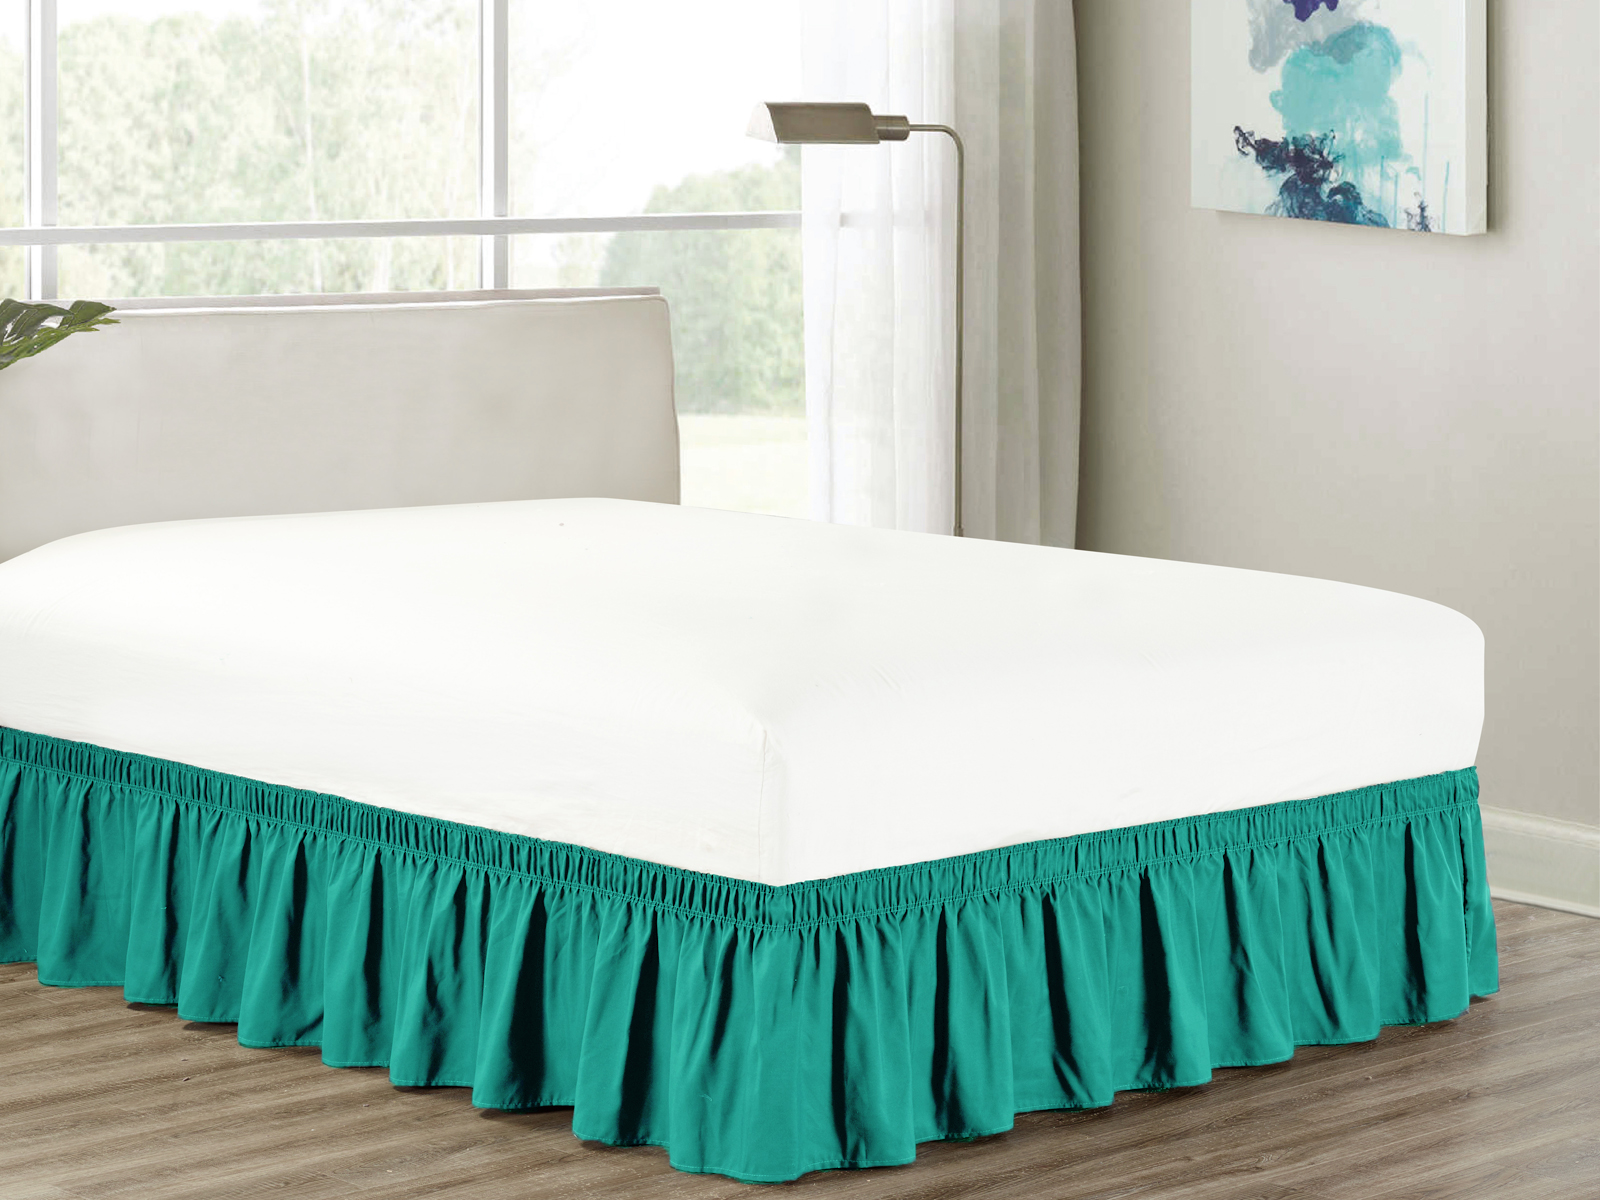 """Heavy Duty Elastic Wrap-Around 18"""" Drop Dust Ruffled Bedskirt Cover Teal Blue-Green... by HG station"""